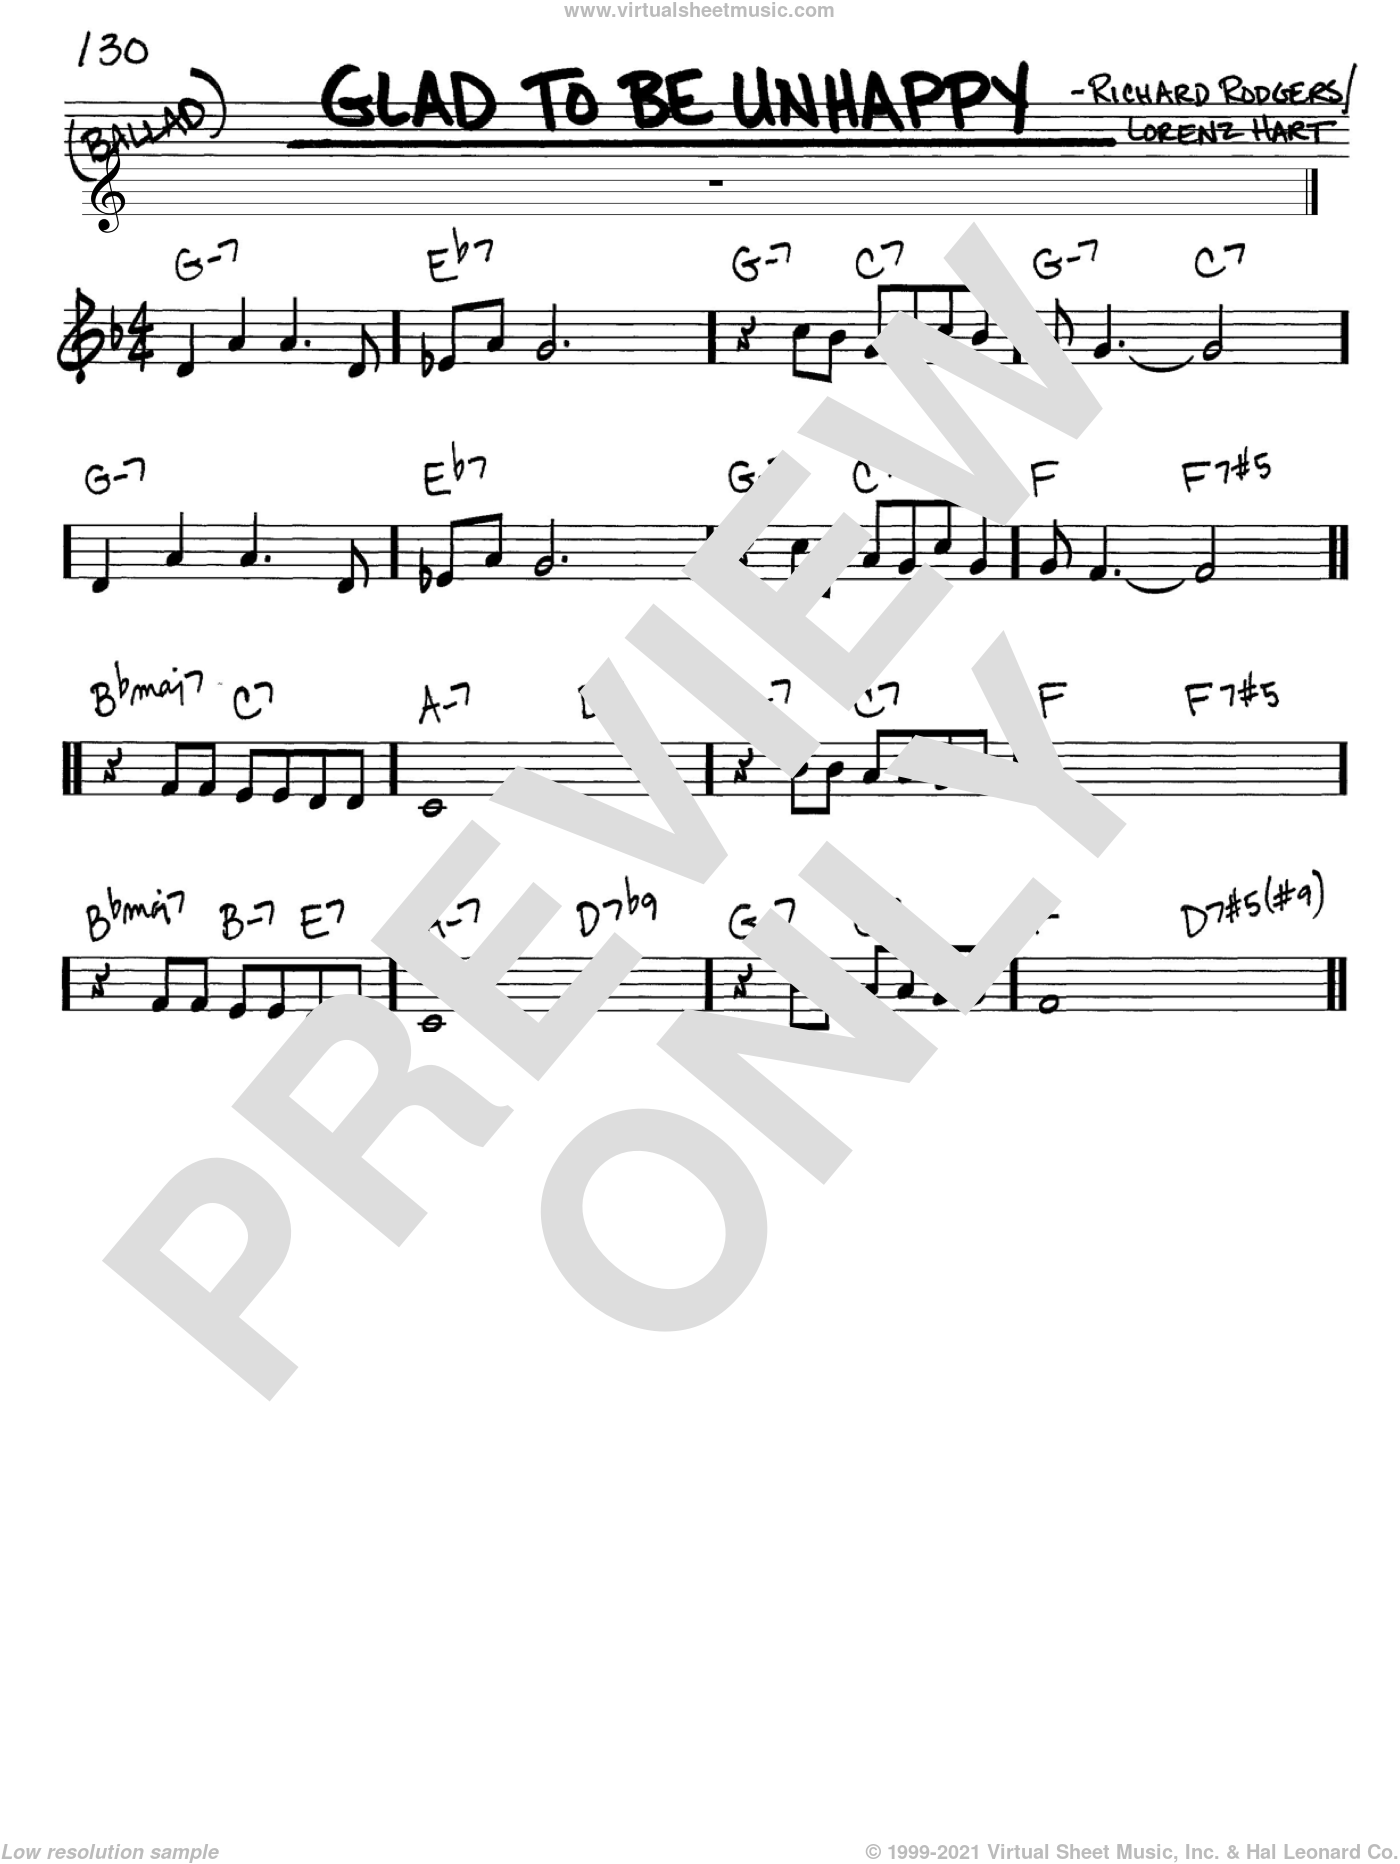 Glad To Be Unhappy sheet music for voice and other instruments (C) by Richard Rodgers, Rodgers & Hart and Lorenz Hart. Score Image Preview.